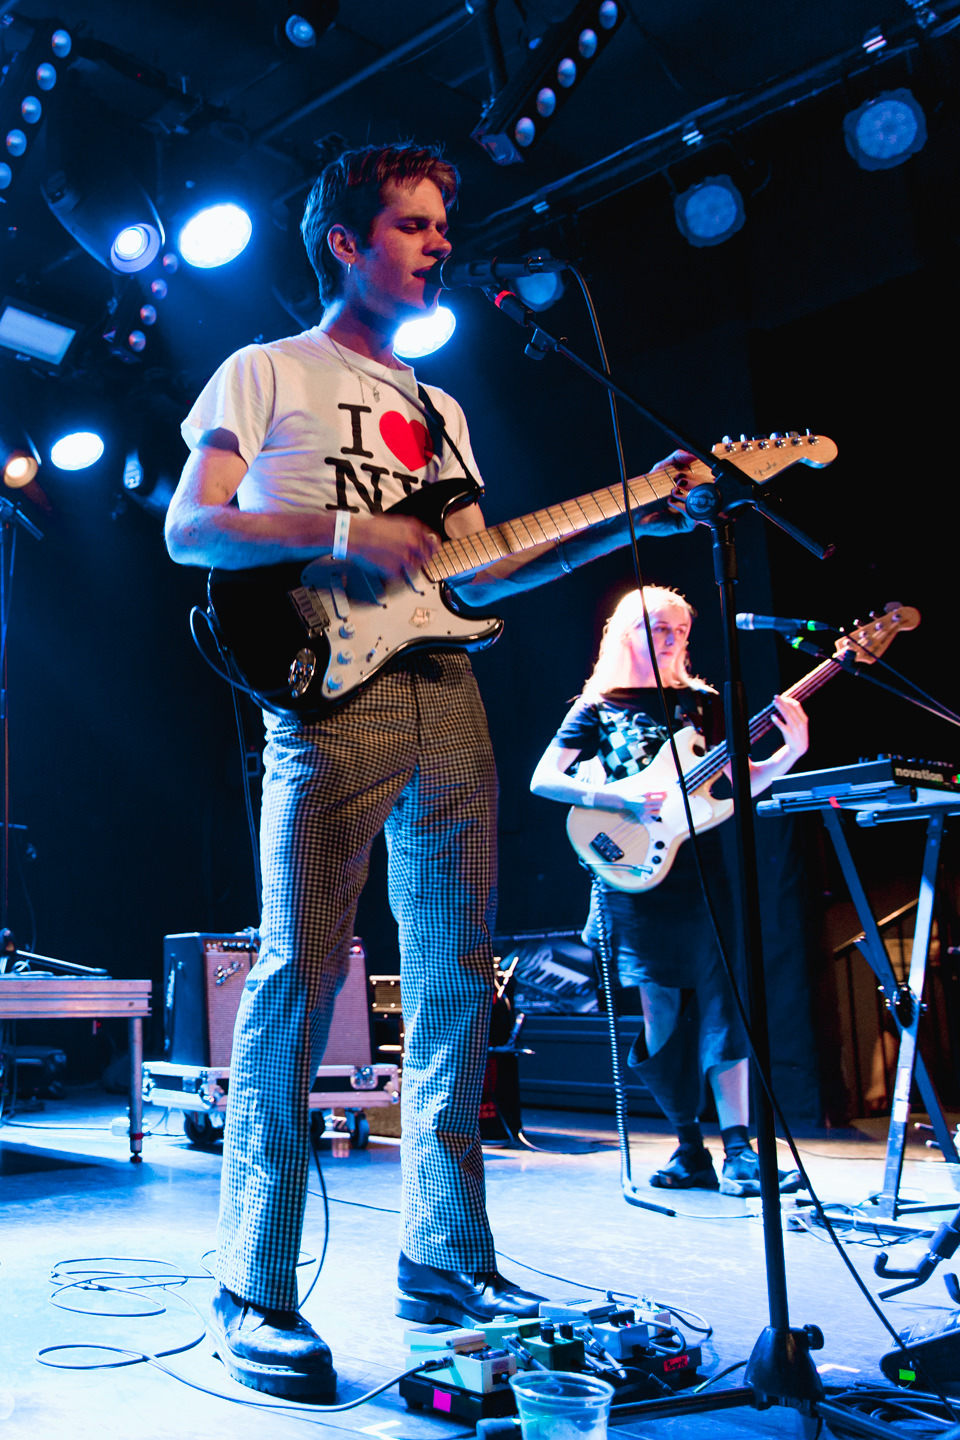 180310-kirby-gladstein-photography-porches-concert-teragram-ballroom-los-angeles-8925.jpg